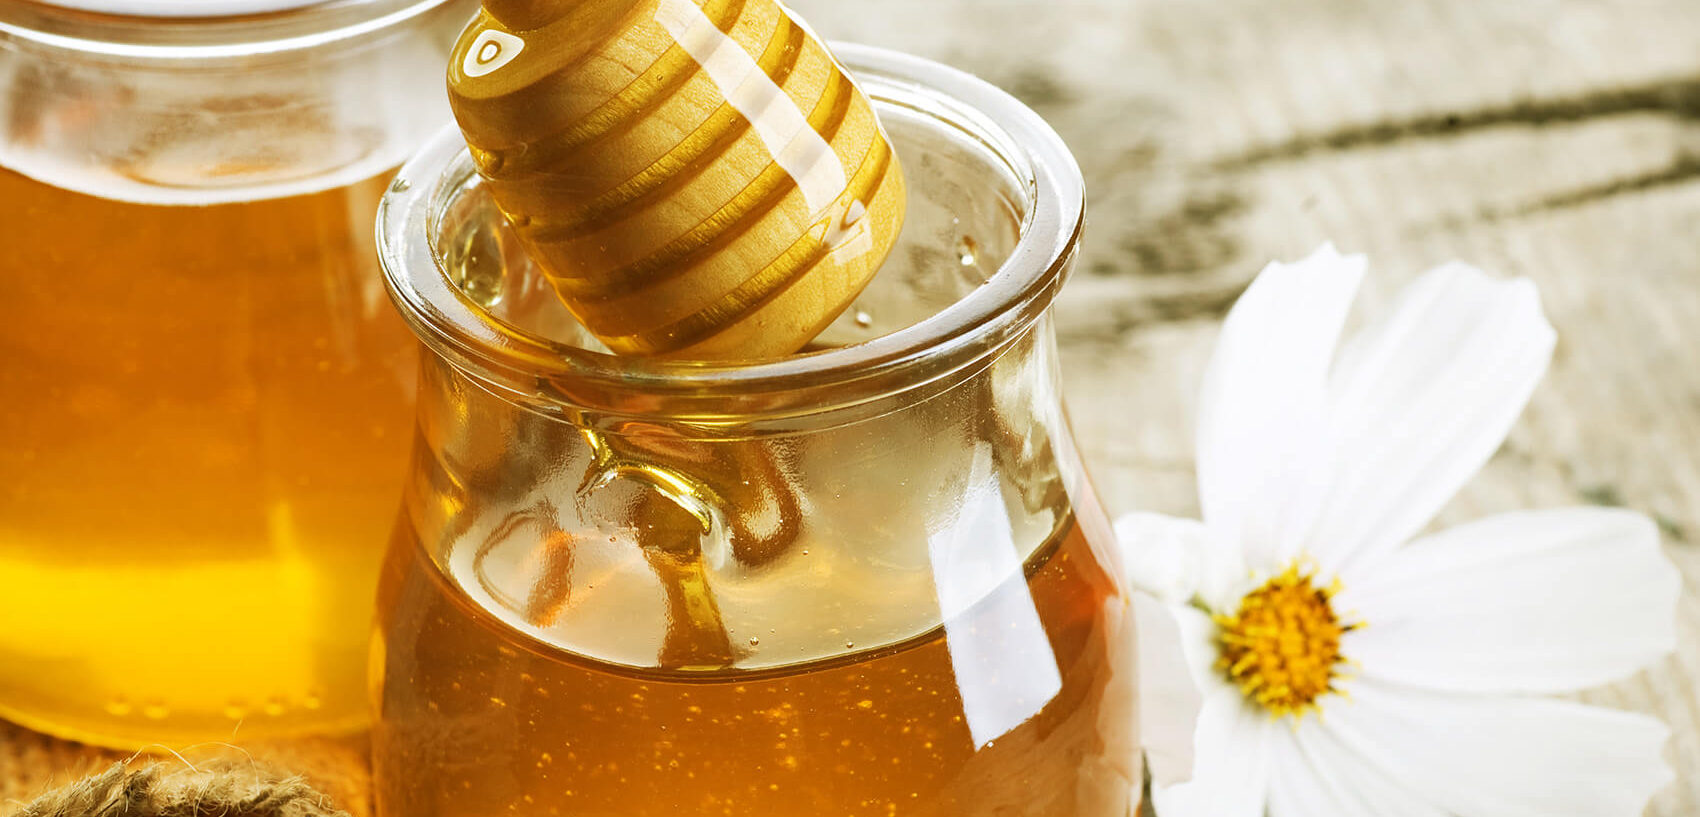 Medicinal Uses of Honey: What the Research Shows